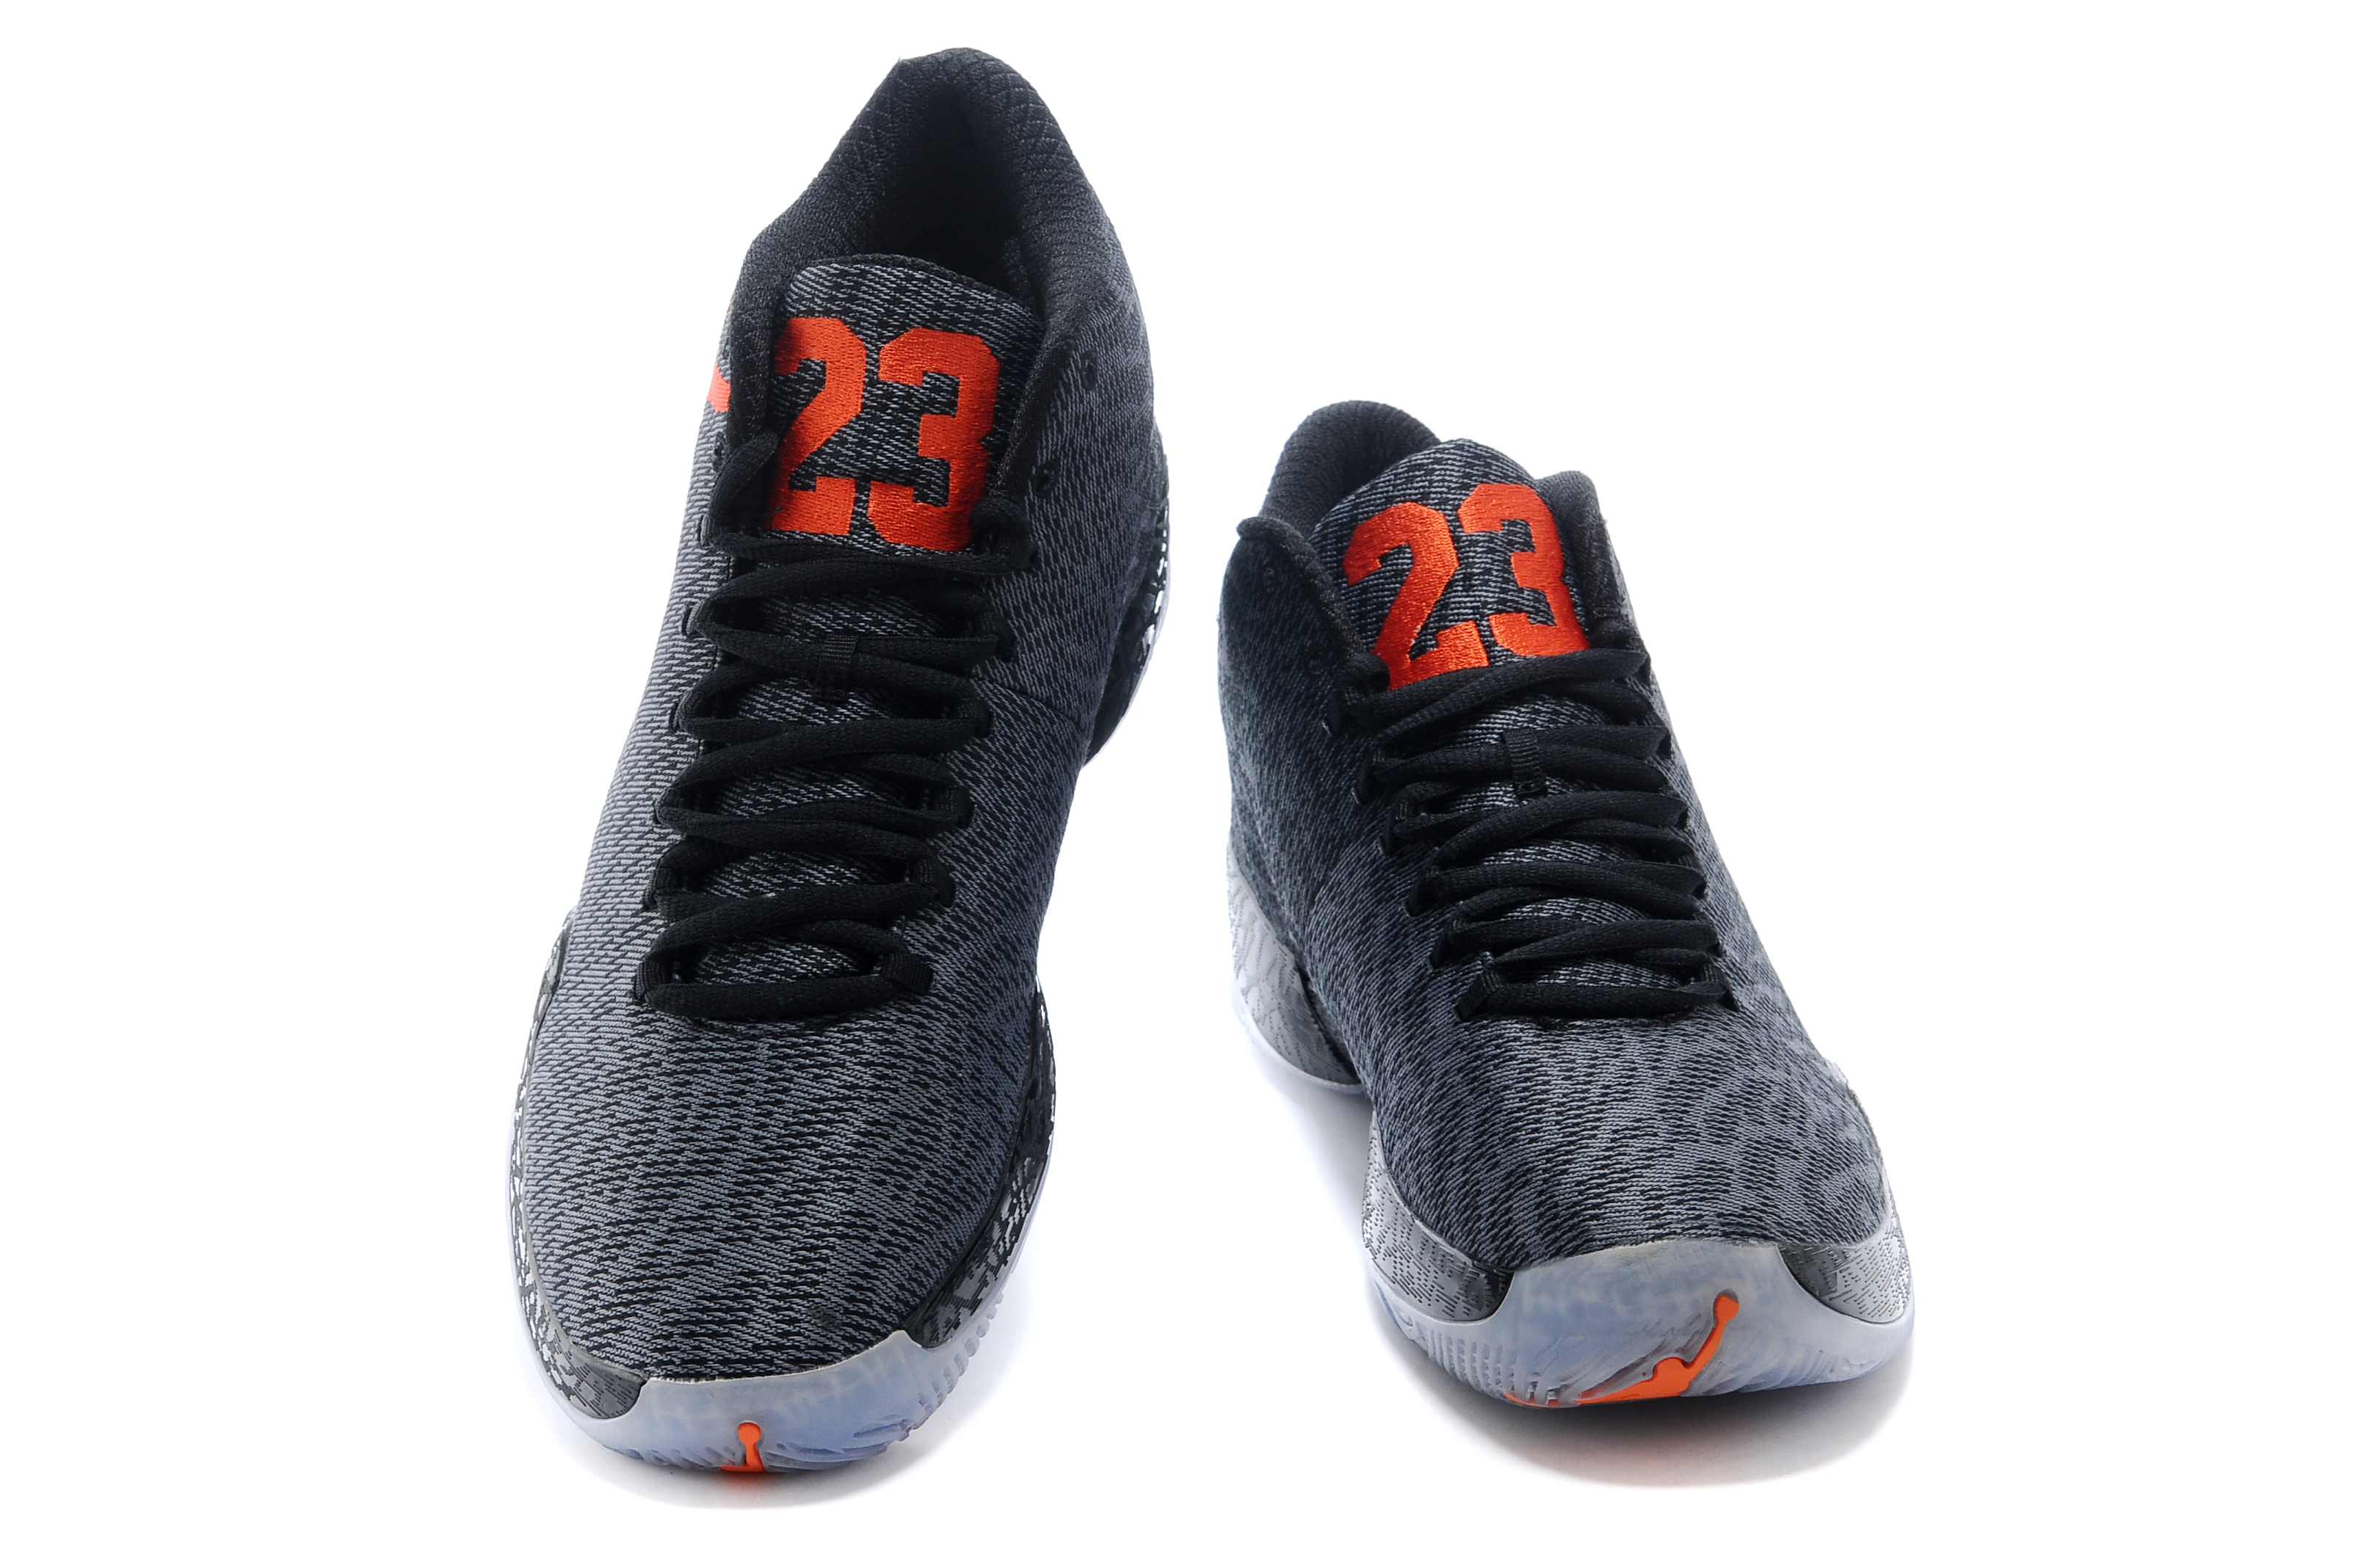 Air Jordan 29 Black Red Jordan Basketball Shoes